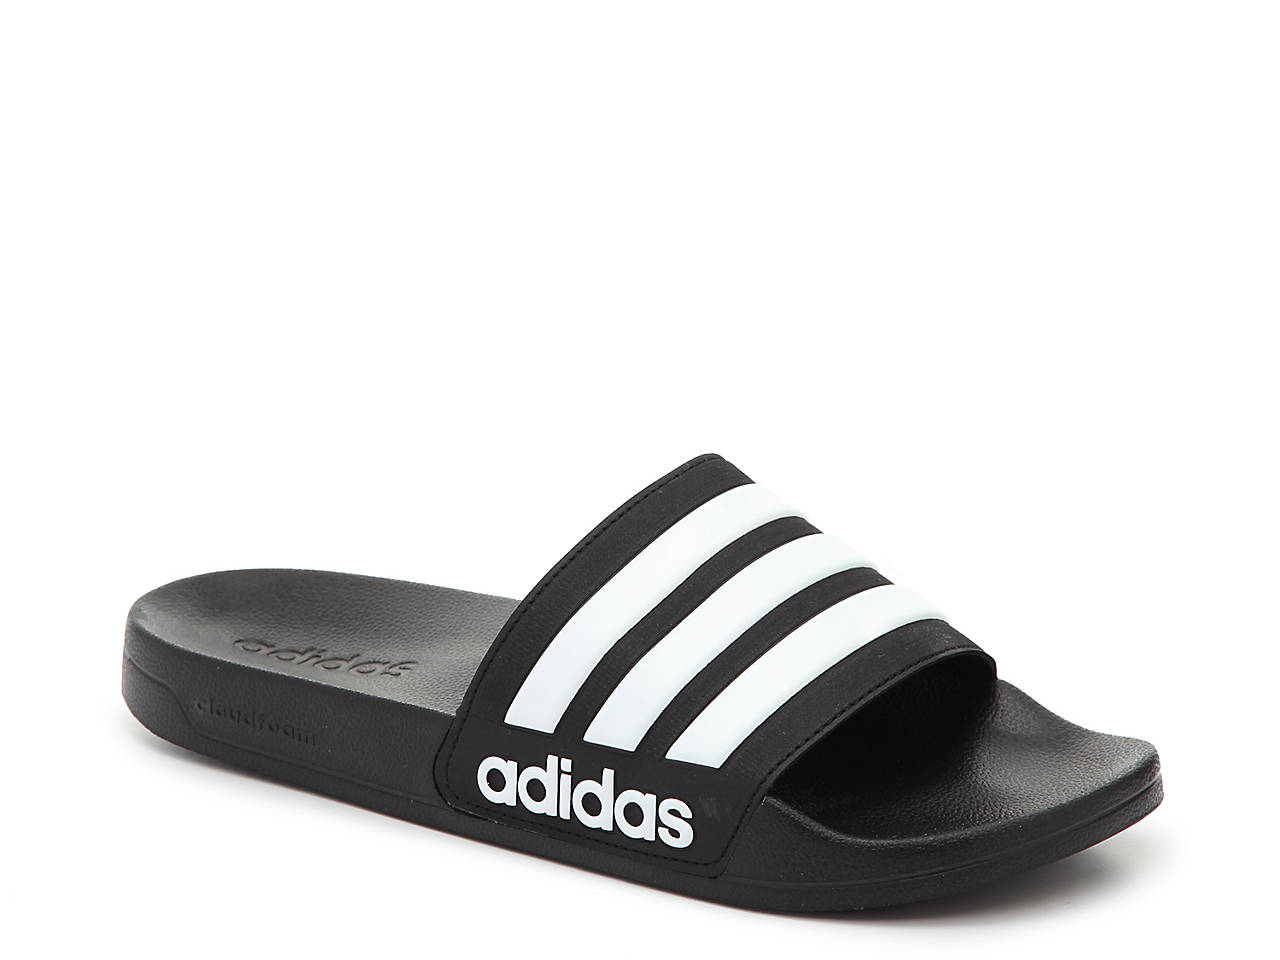 bcca79fd2 adidas Adilette Shower Slide Sandal - Men s Men s Shoes